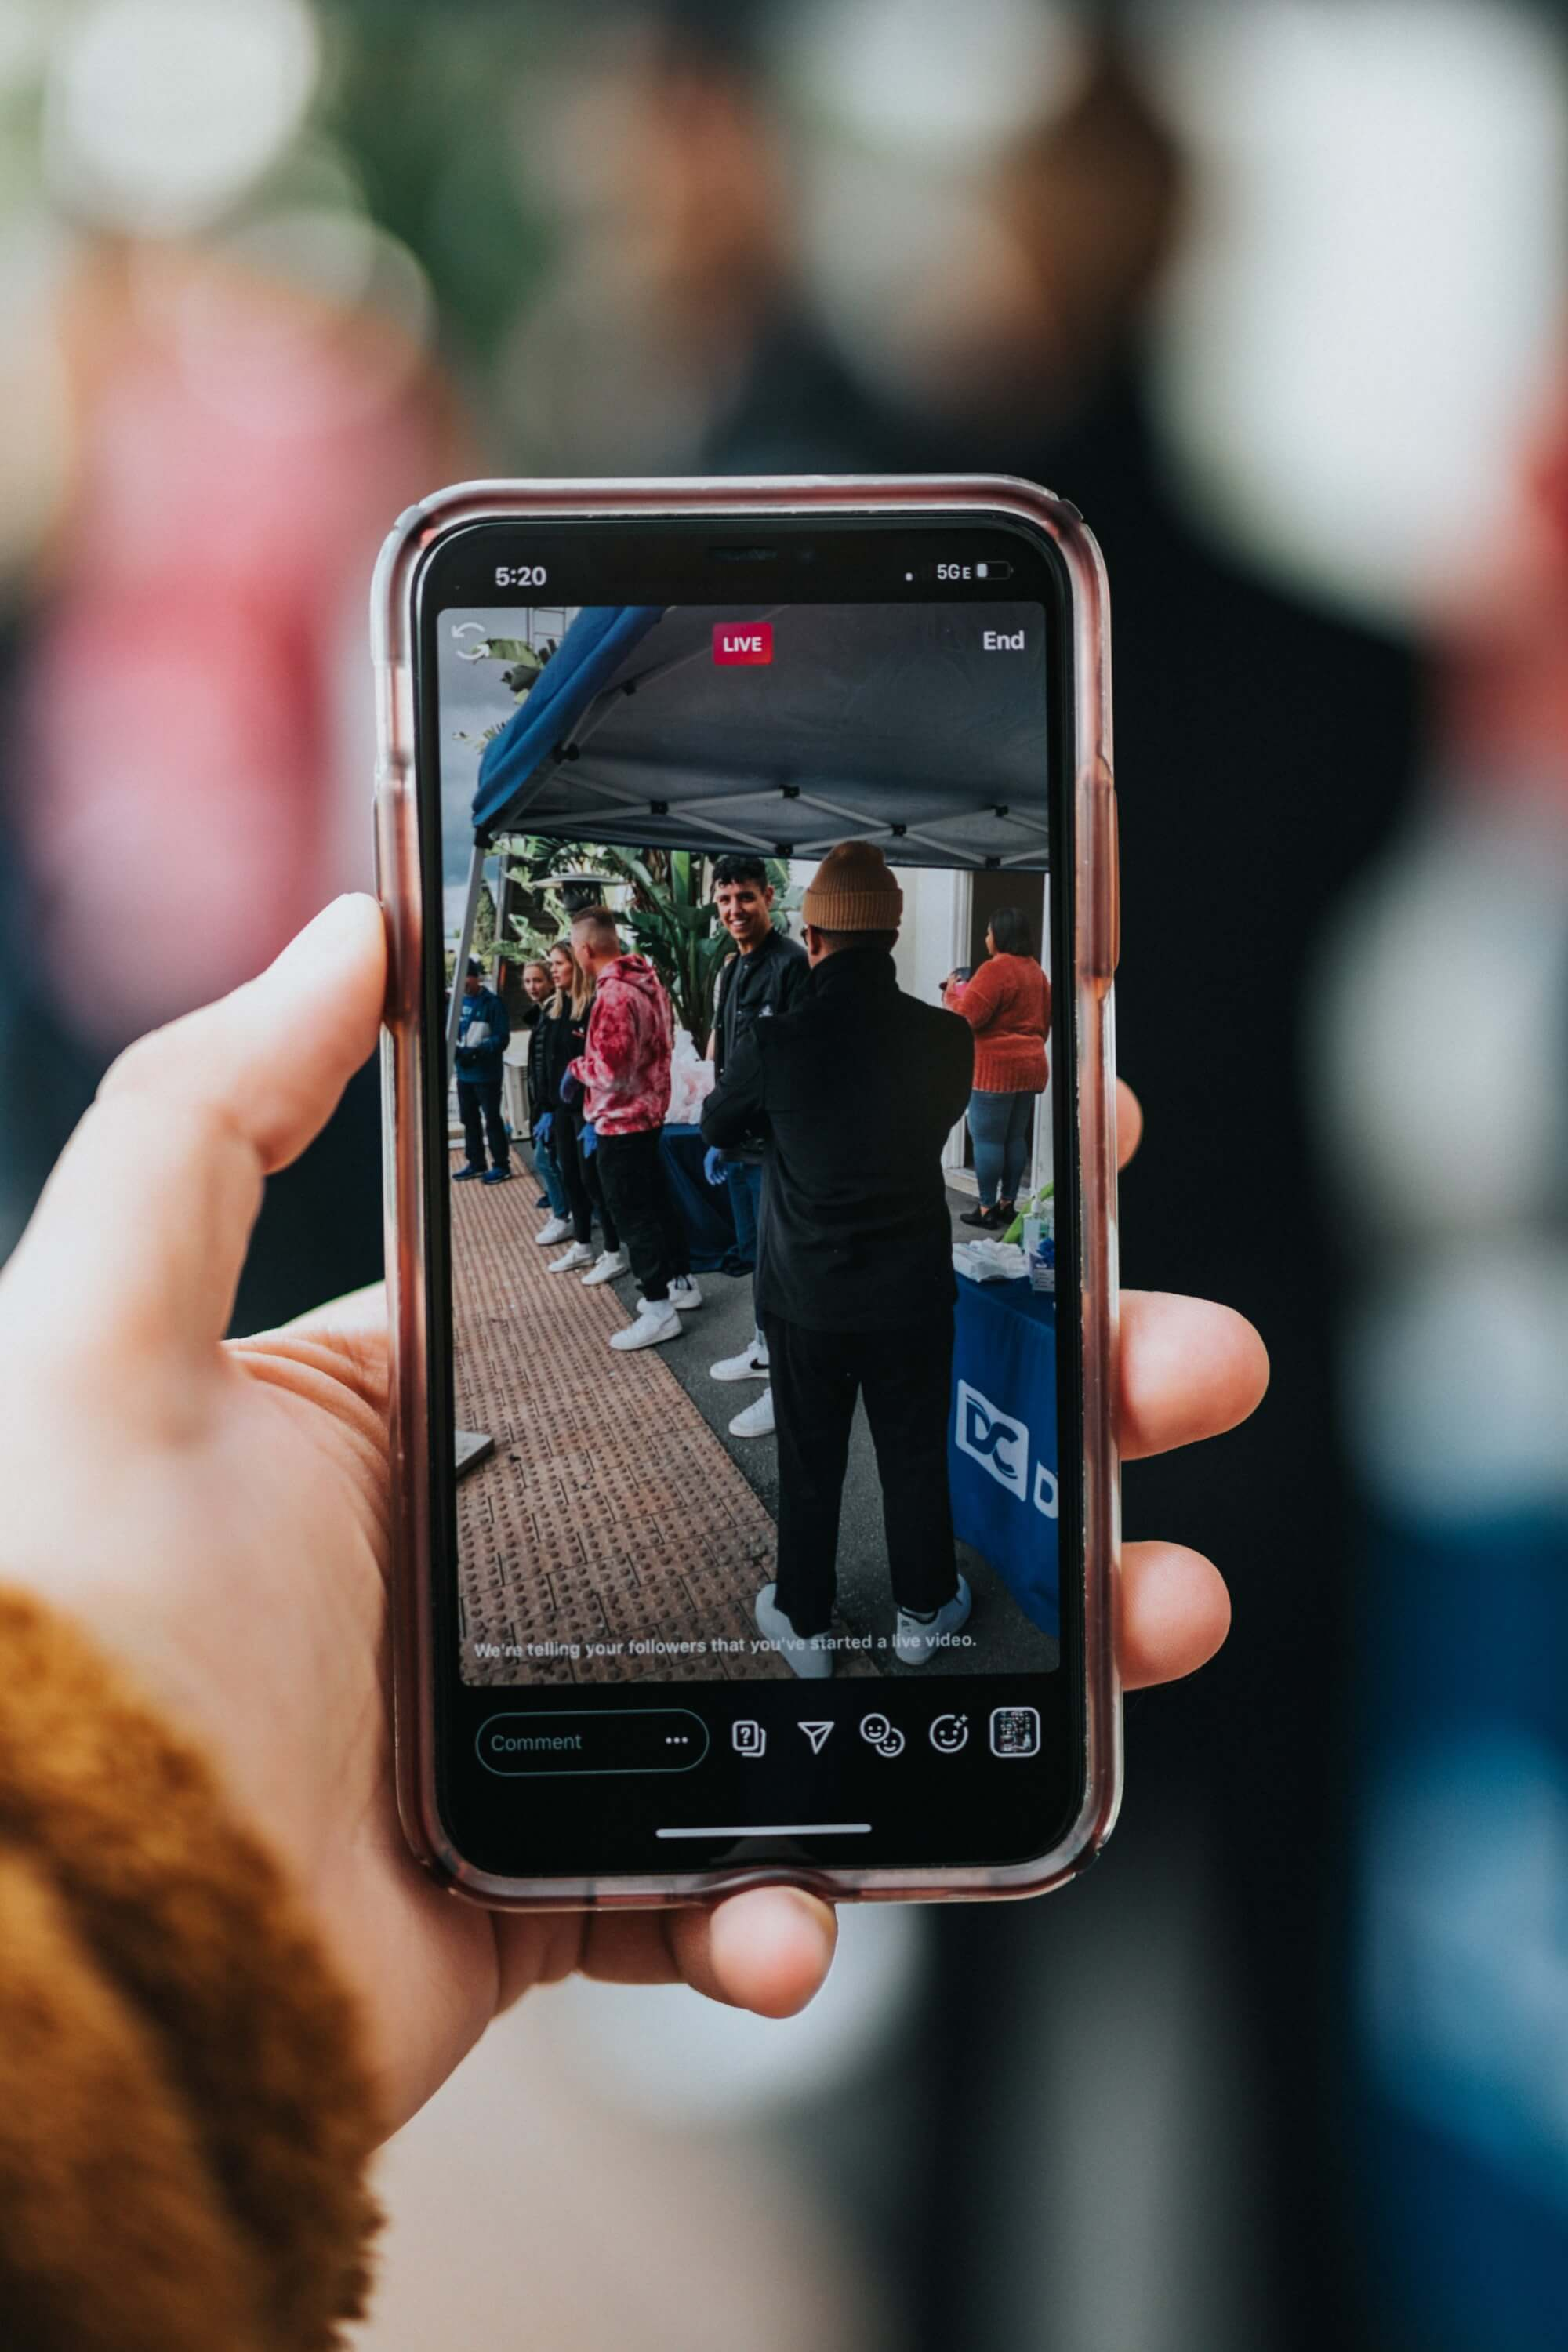 Hand holding iPhone, showing live video on screen